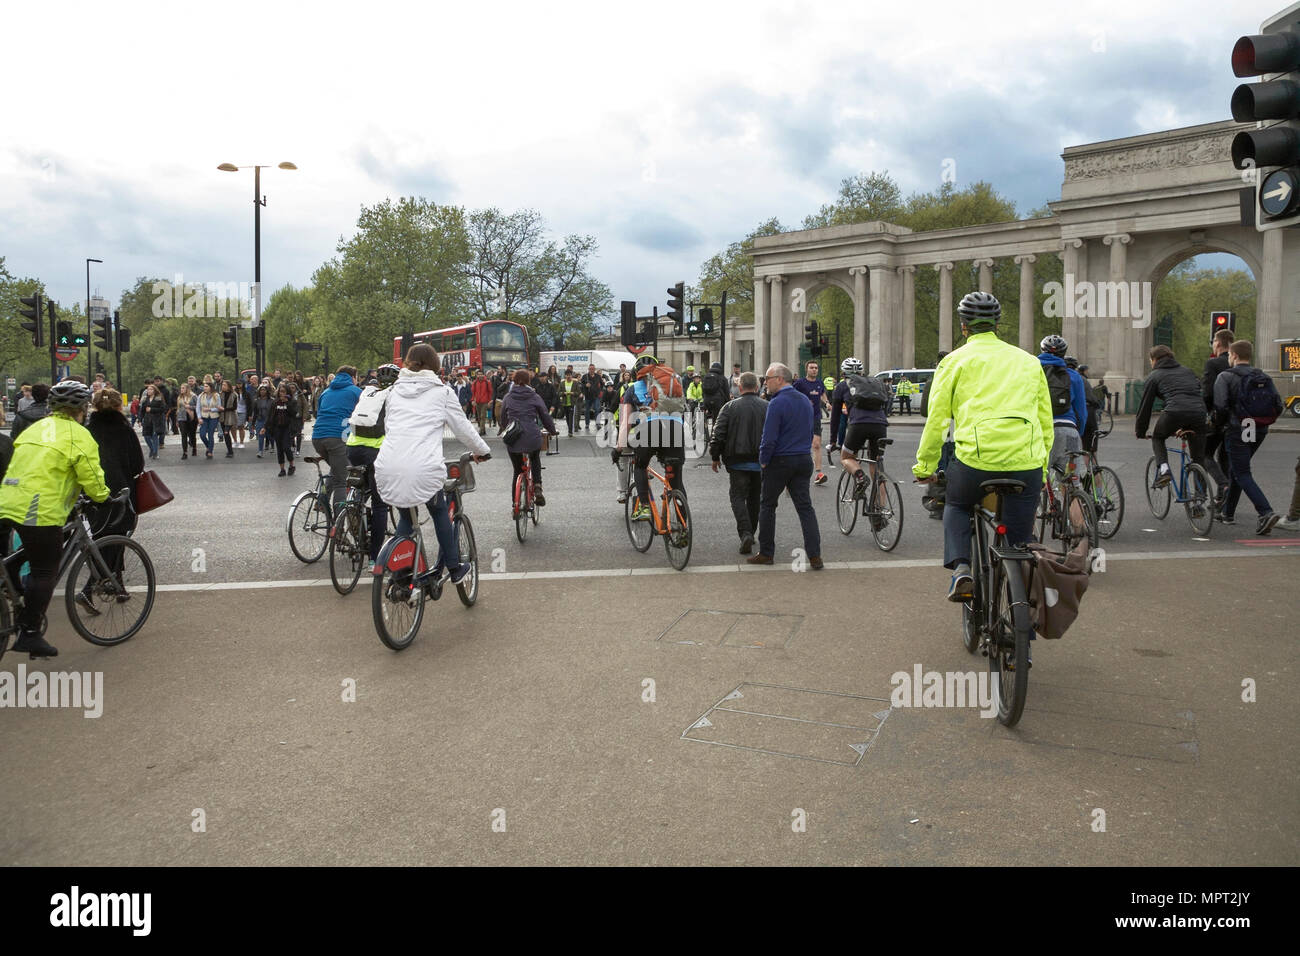 Hyde Park Corner London cyclists and pedestrians crossing a road. Commuting by bike in London. Cycling in london. - Stock Image